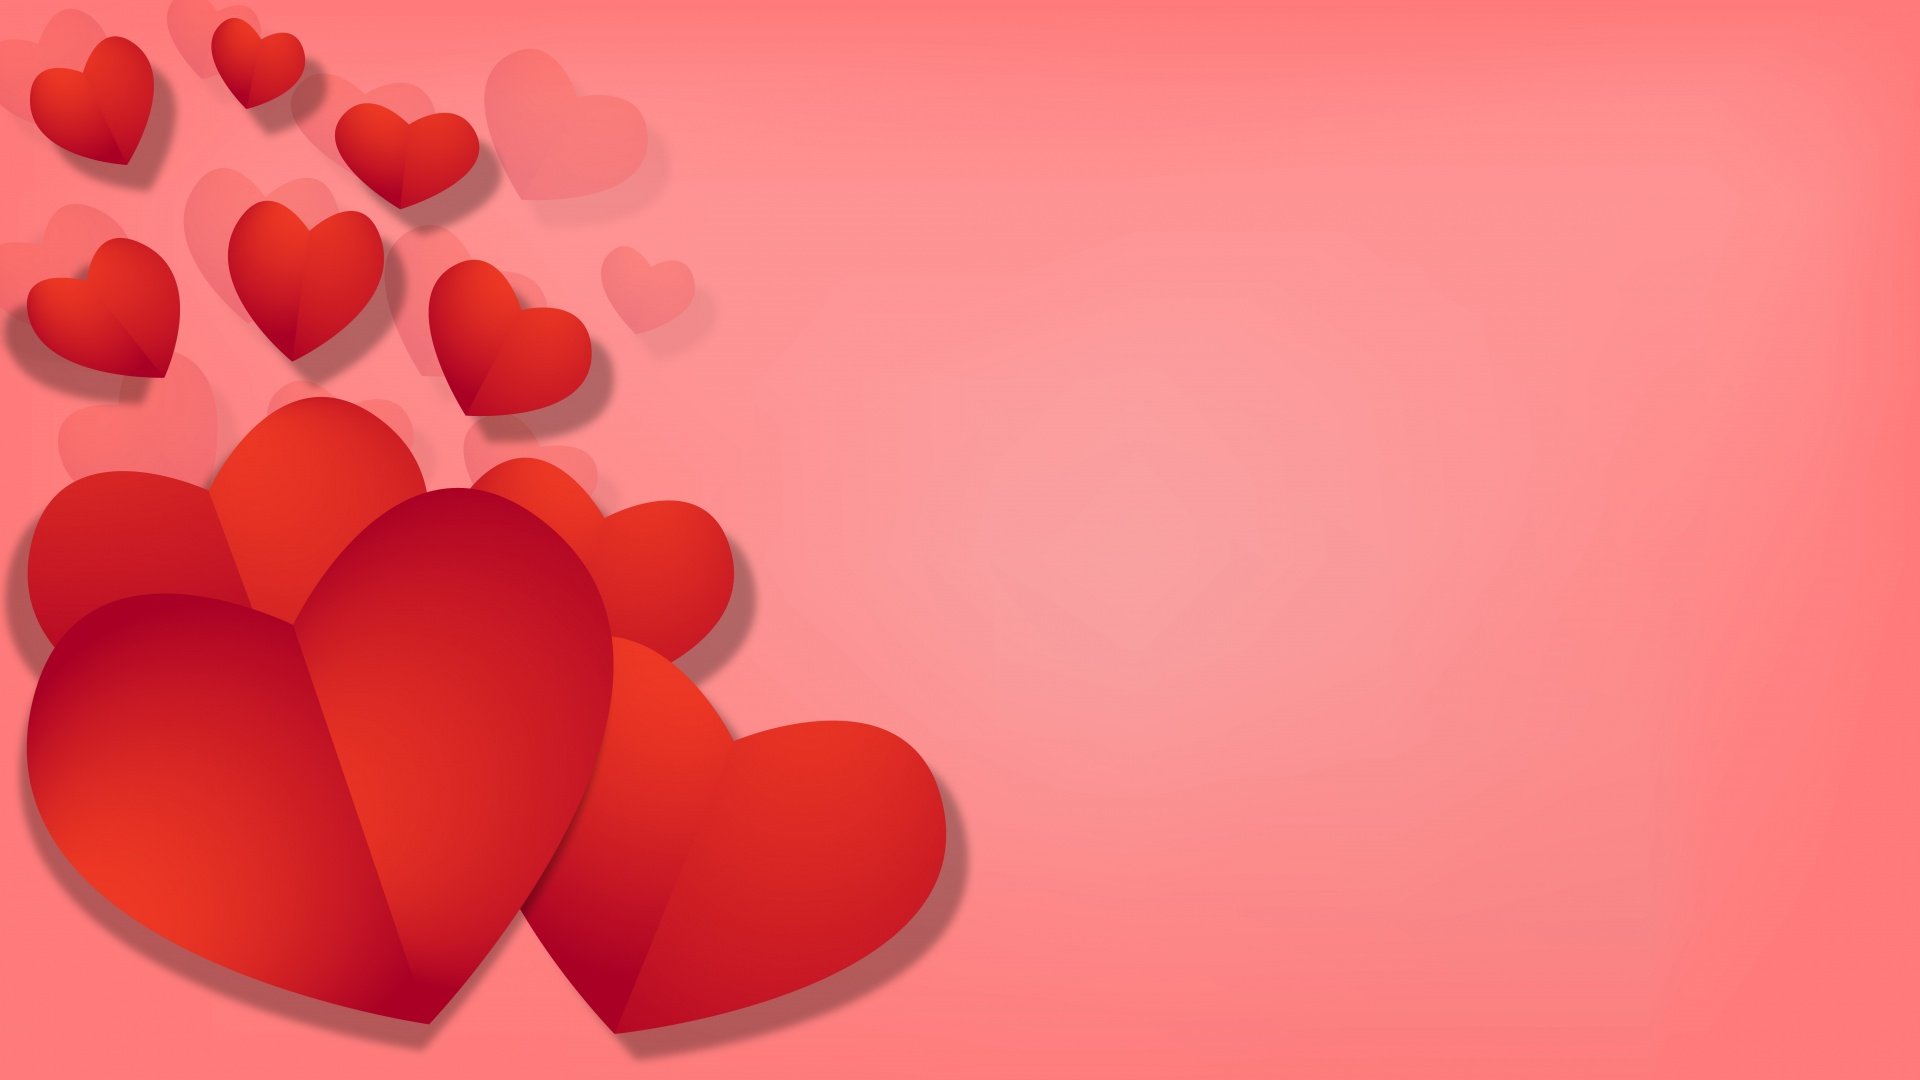 Hearts Love Wallpaper Background Love Heart Free Image From